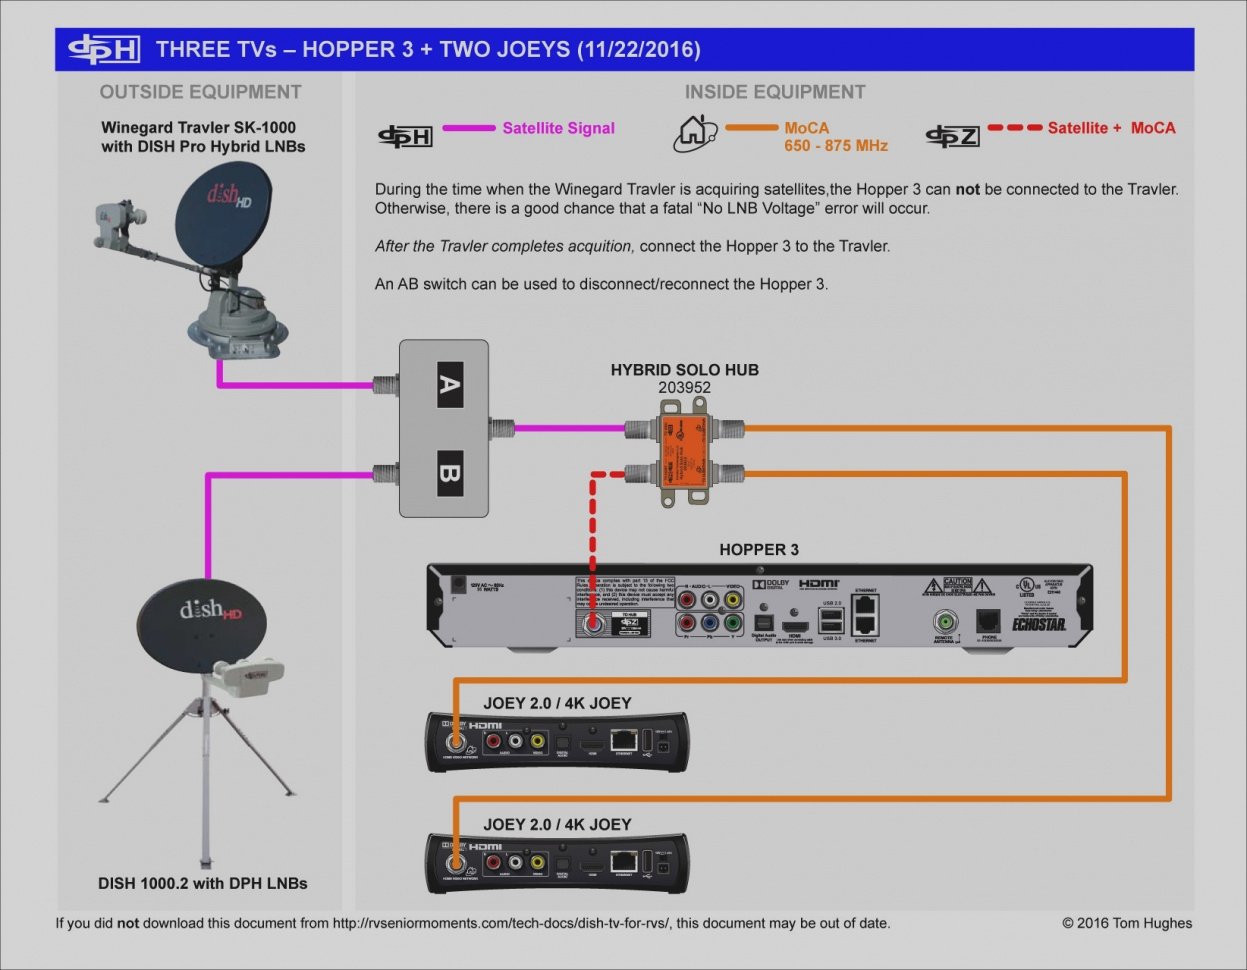 dish network wiring diagram 192092 dish network wiring diagrams dual tuner dish hopper 3 wiring diagram | free wiring diagram